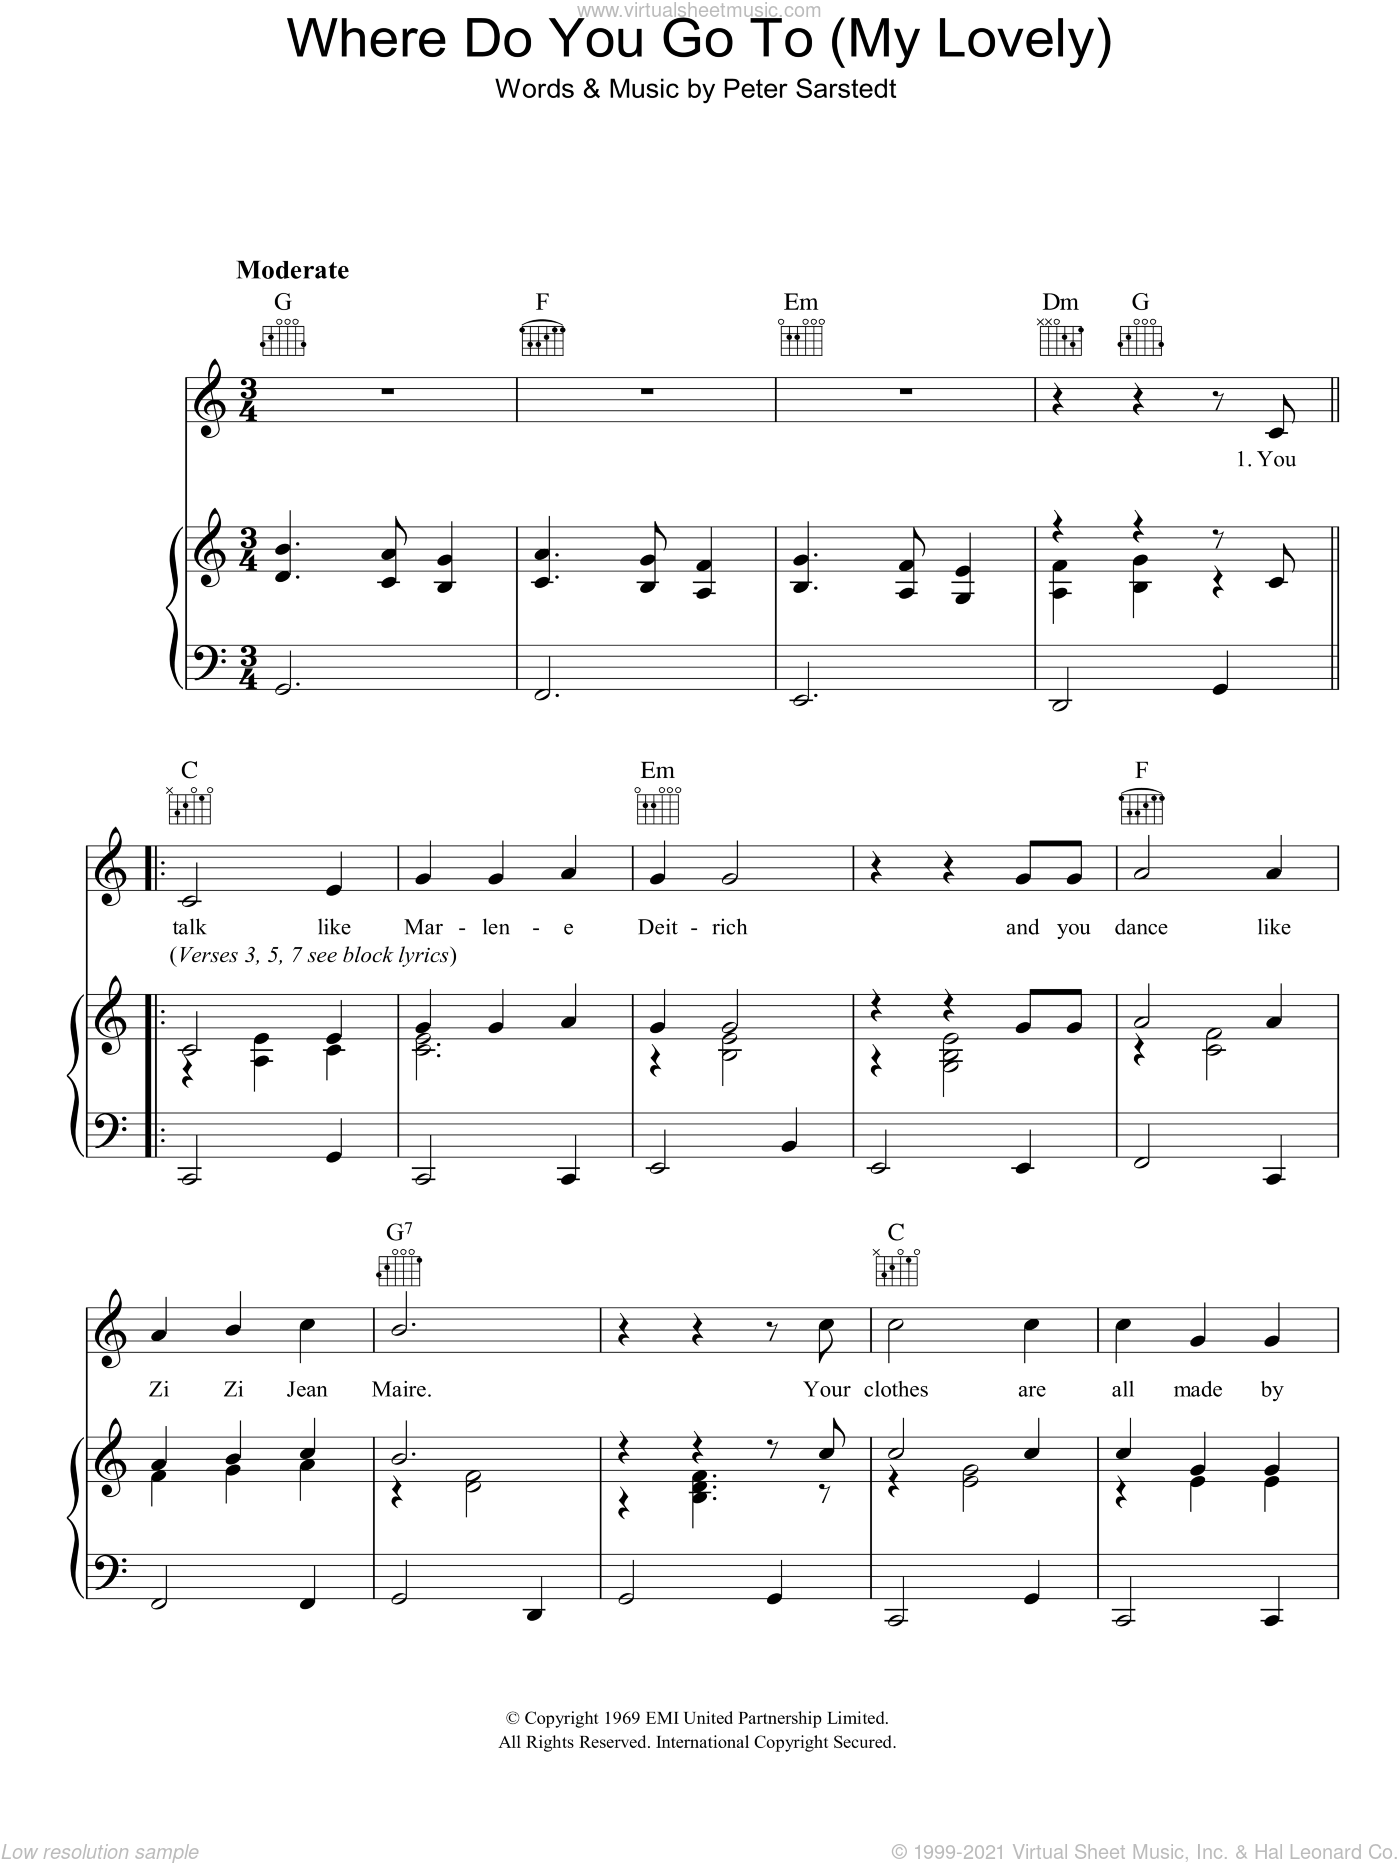 Where Do You Go To (My Lovely) sheet music for voice, piano or guitar by Peter Sarstedt, intermediate skill level